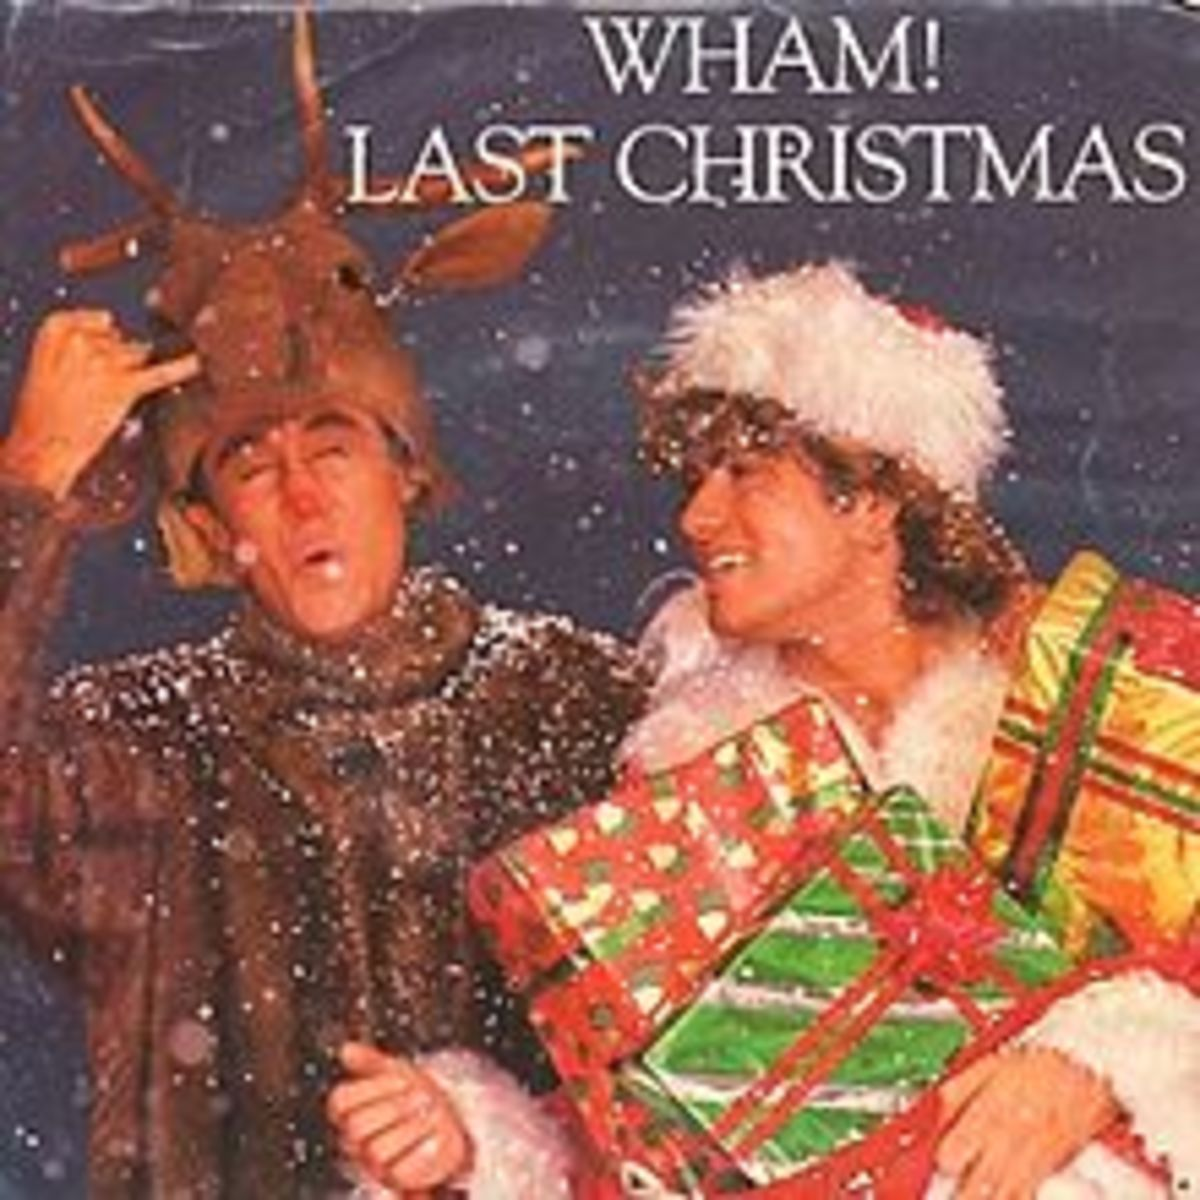 "The Original Cover of ""Last Christmas"" in 1984 with Wham!"